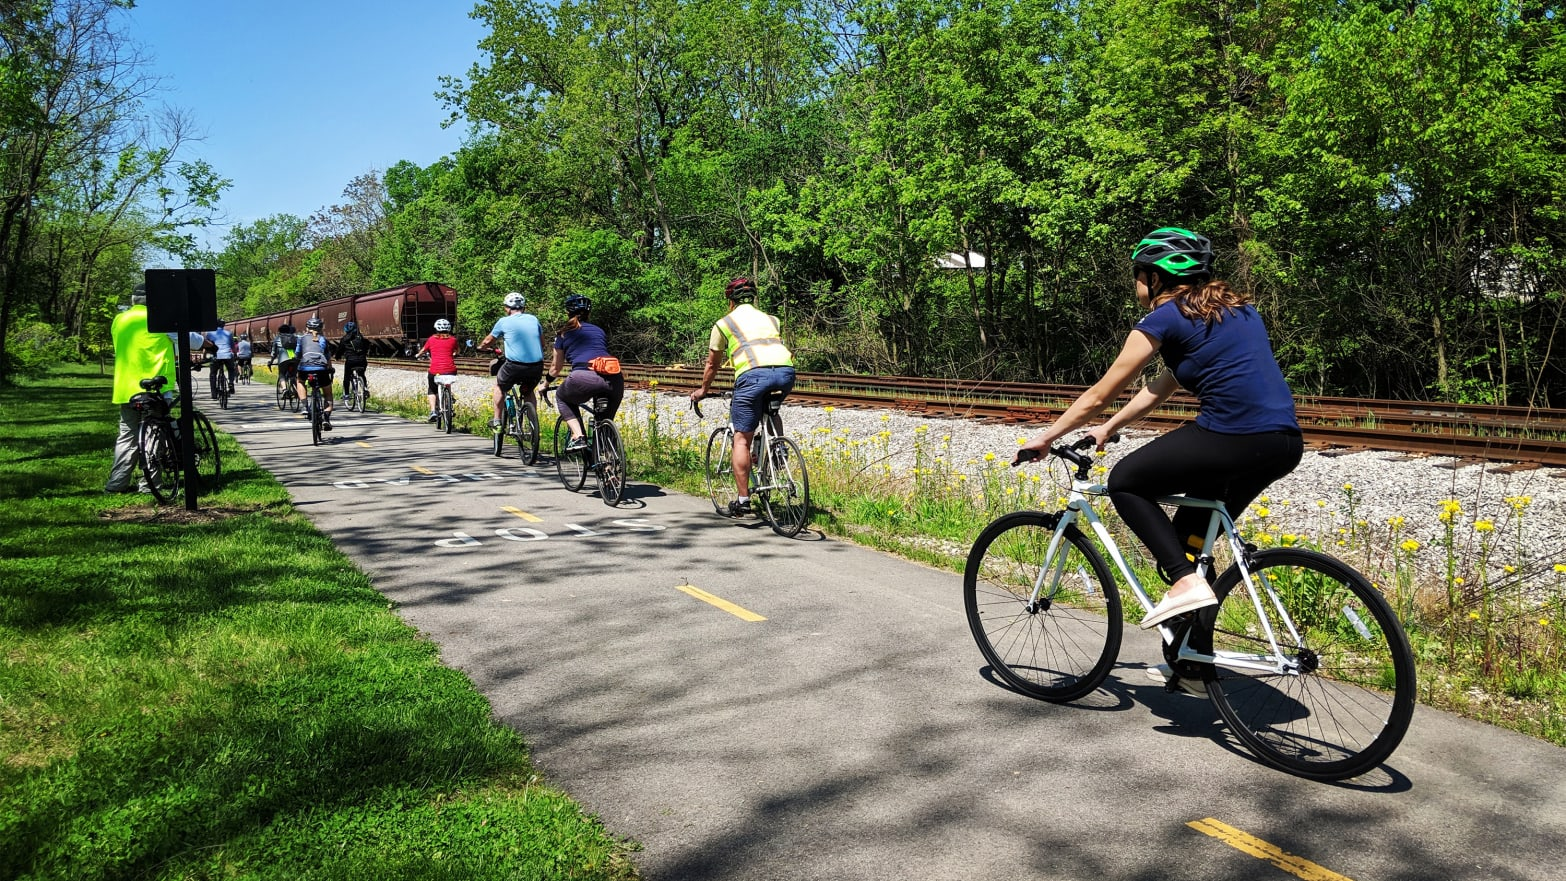 The Great American Rail Trail: The Best Cross-Country Road Trip Is on a Bike